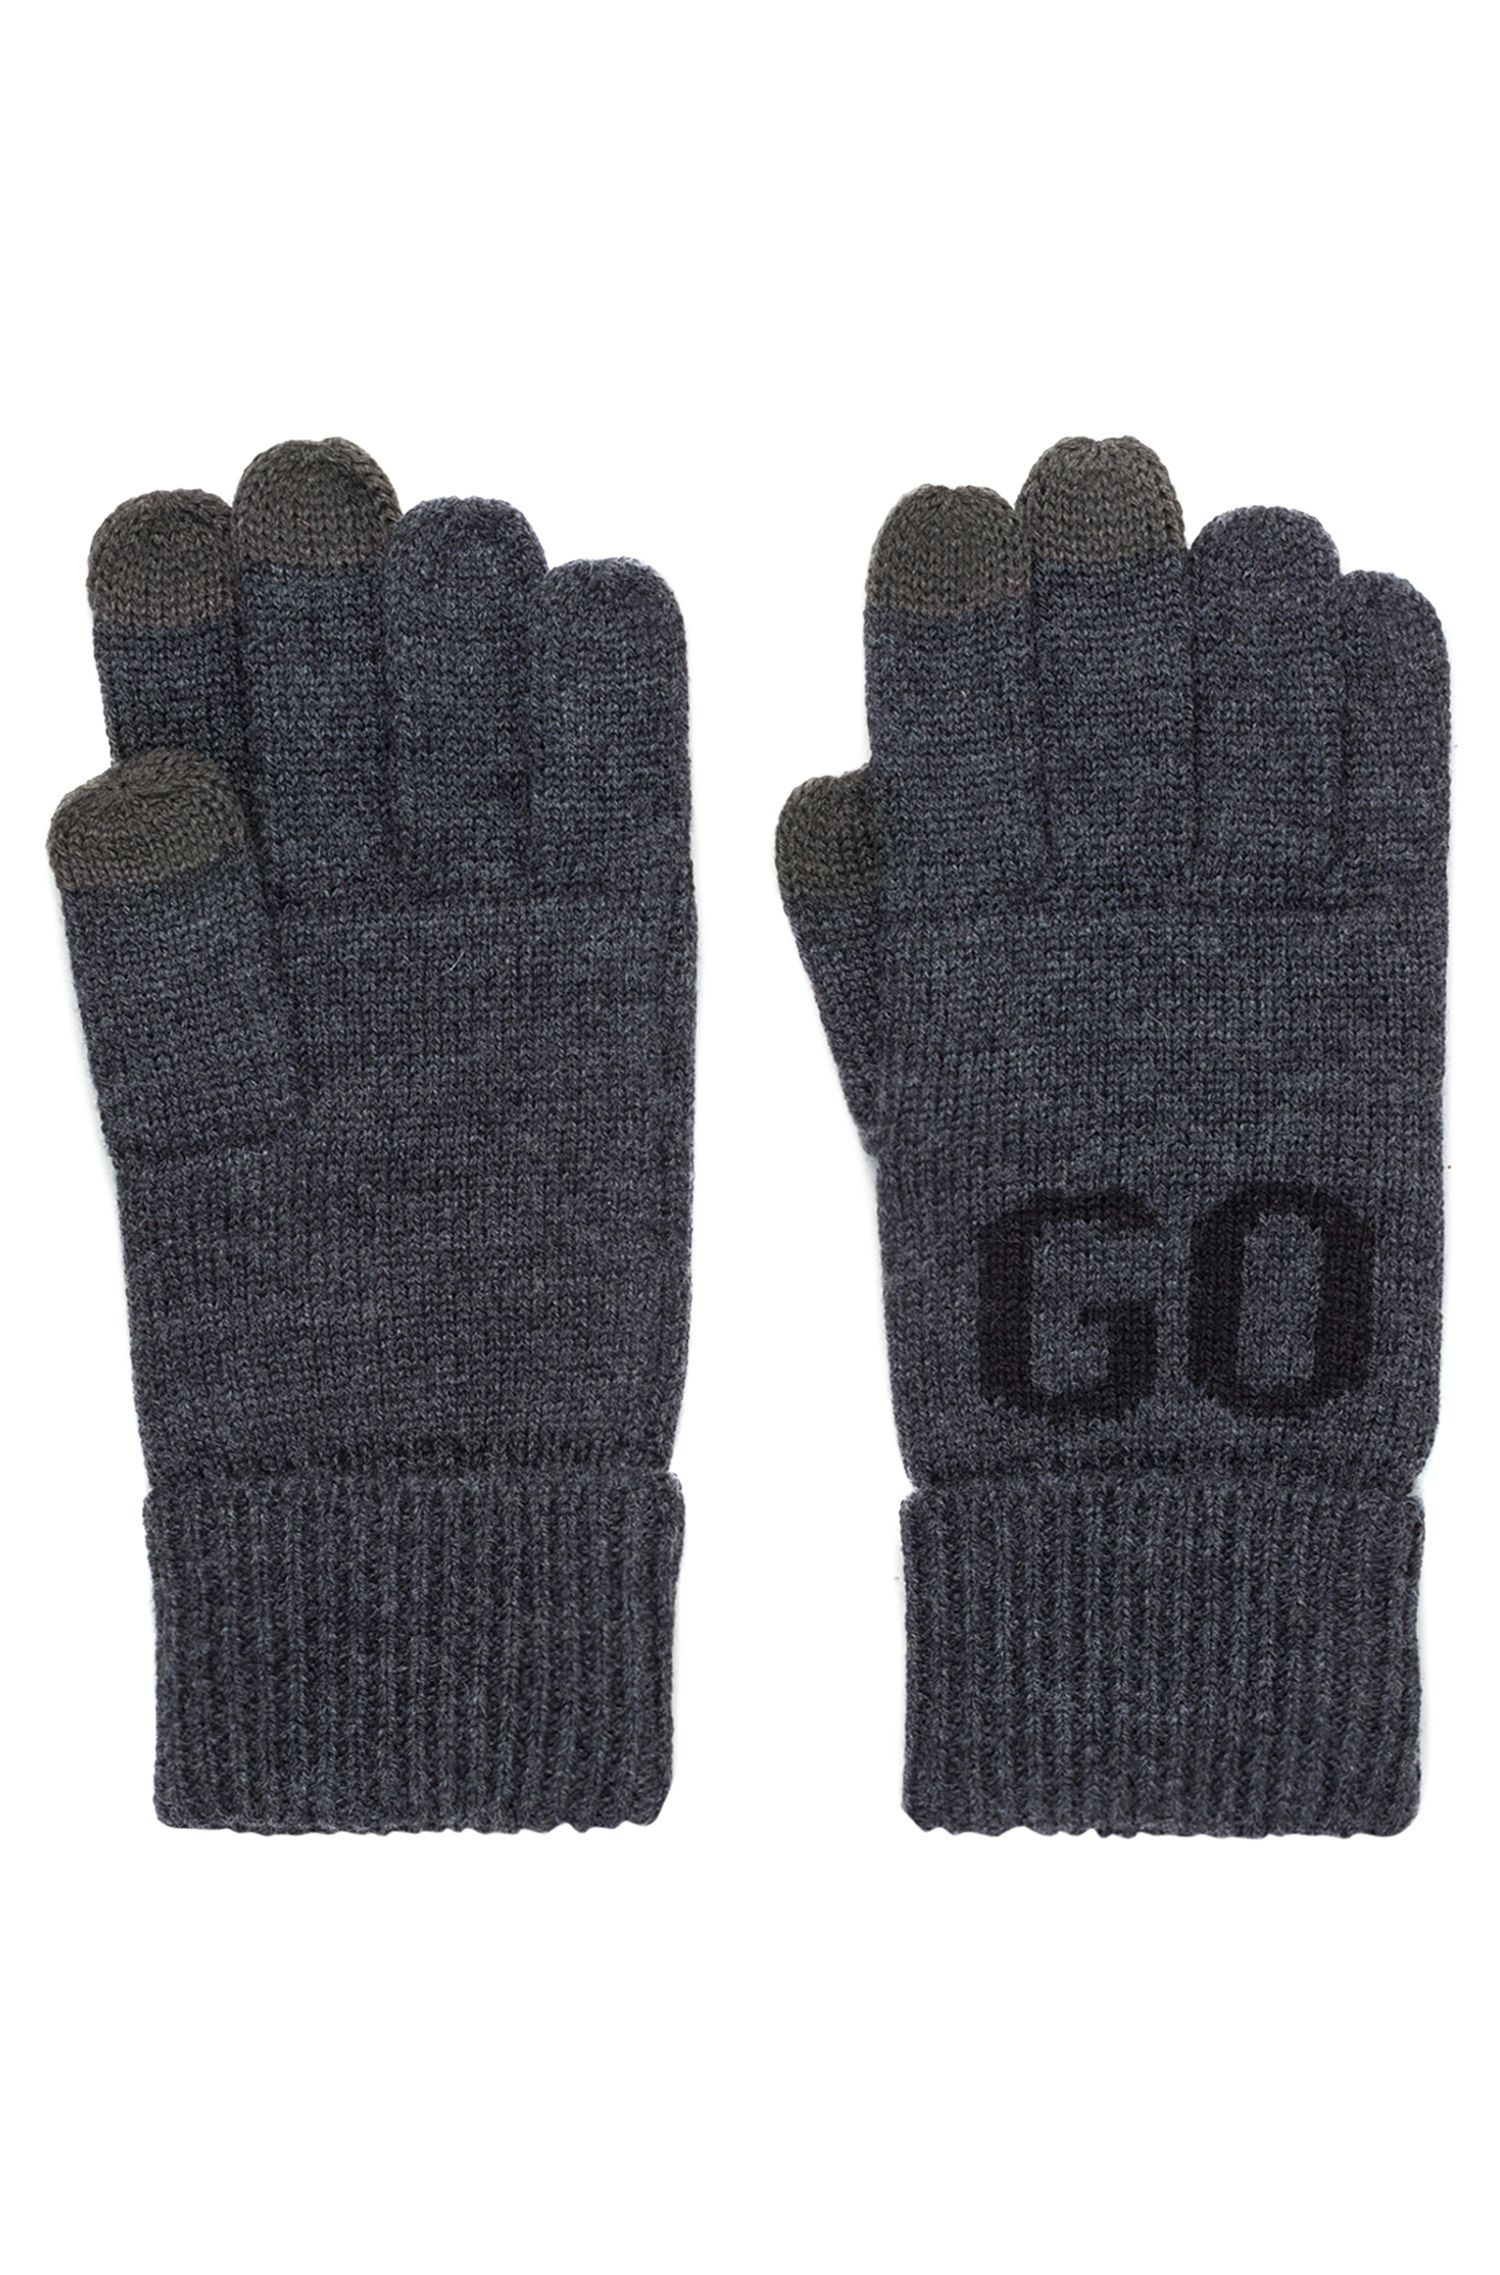 Wool-blend logo gloves with touchscreen fingers, Anthracite